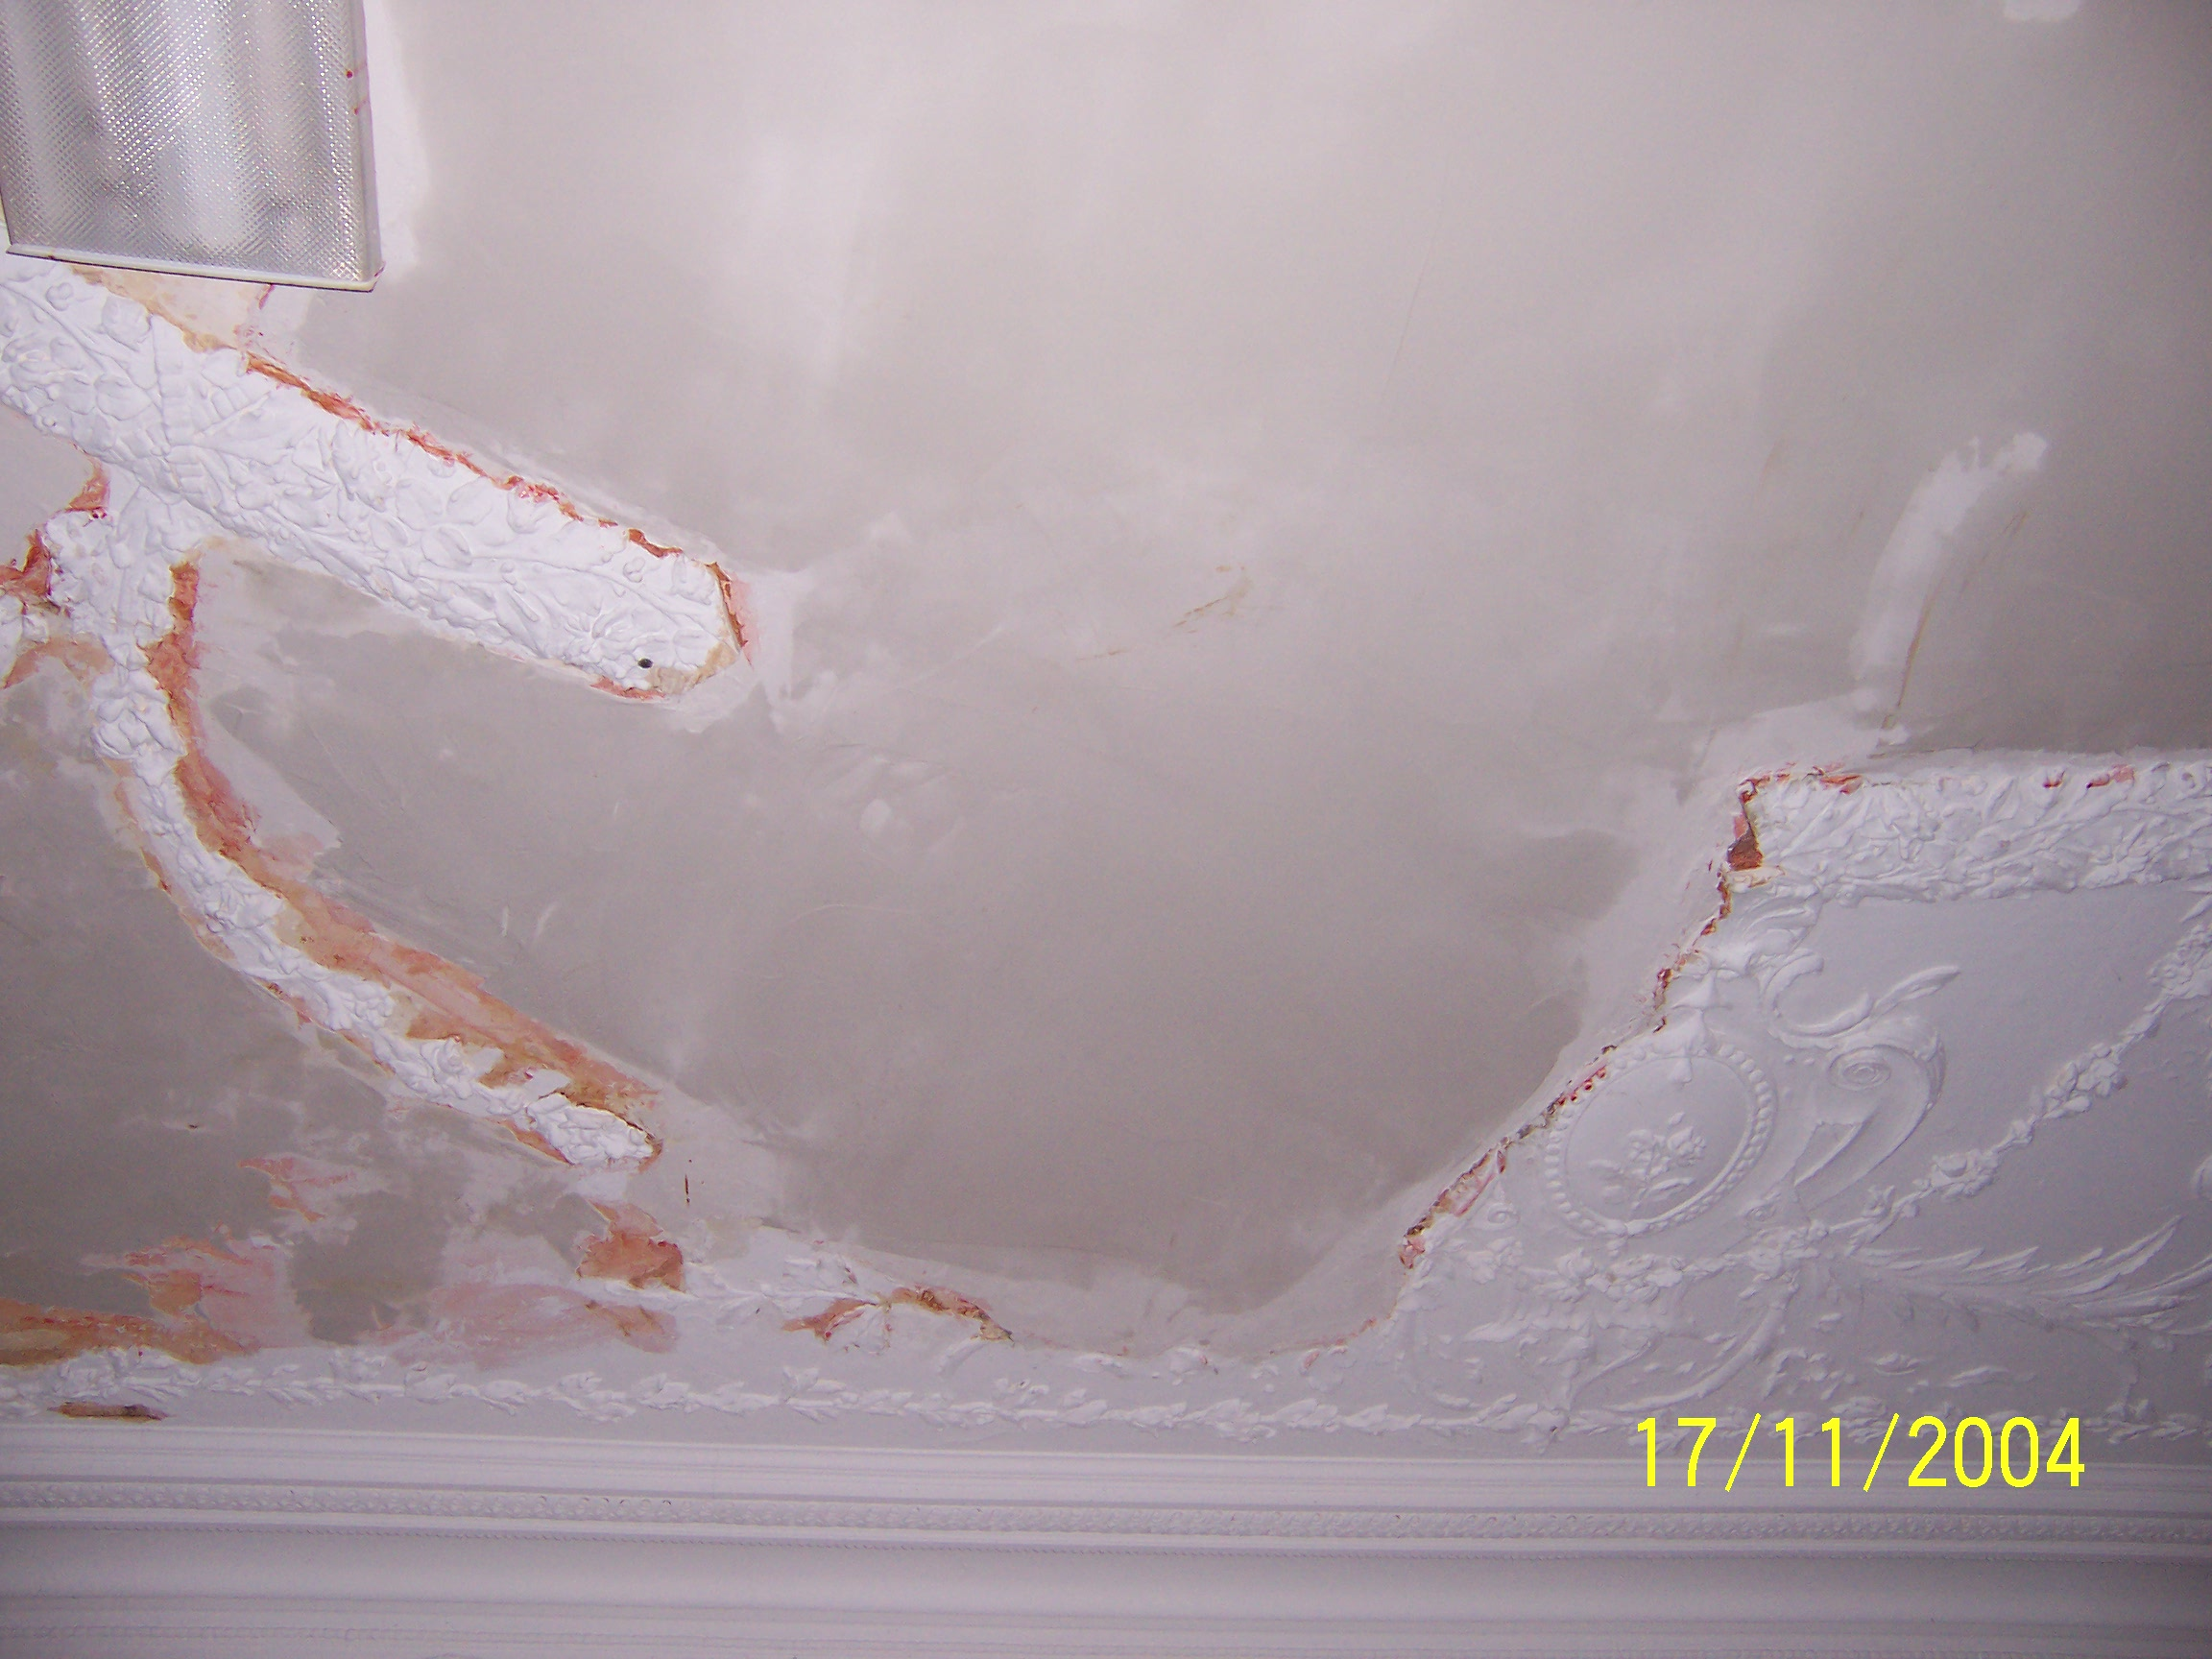 wood frame house suffered from settlement and leaks, that caused the partial collapse of an ornate Dining Room Molded Plaster Ceiling.